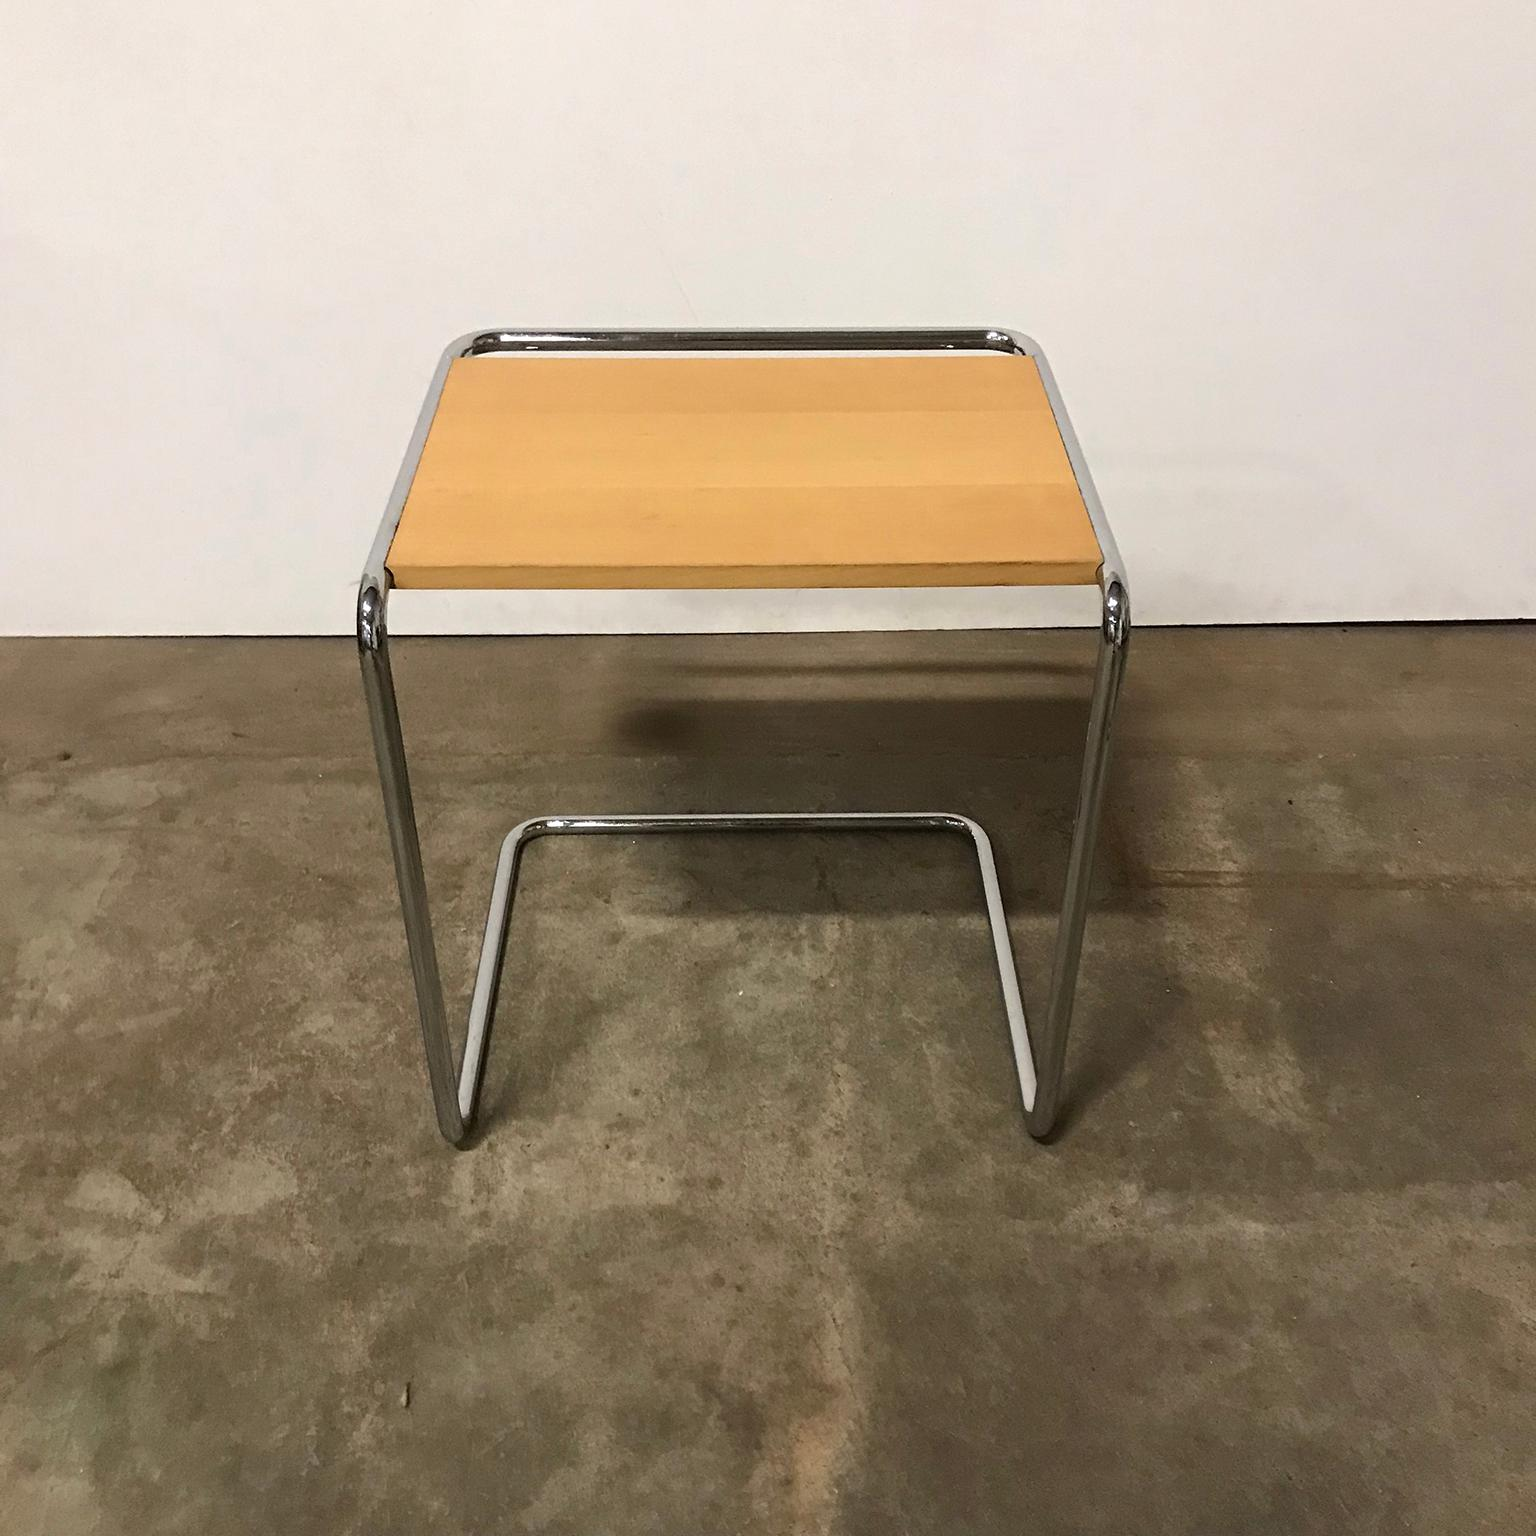 marcel breuer for thonet and wood with chrome set blank houten bijzettafels master mawr metal accent table frame pottery barn slipcover sofa patio umbrella stand standard side